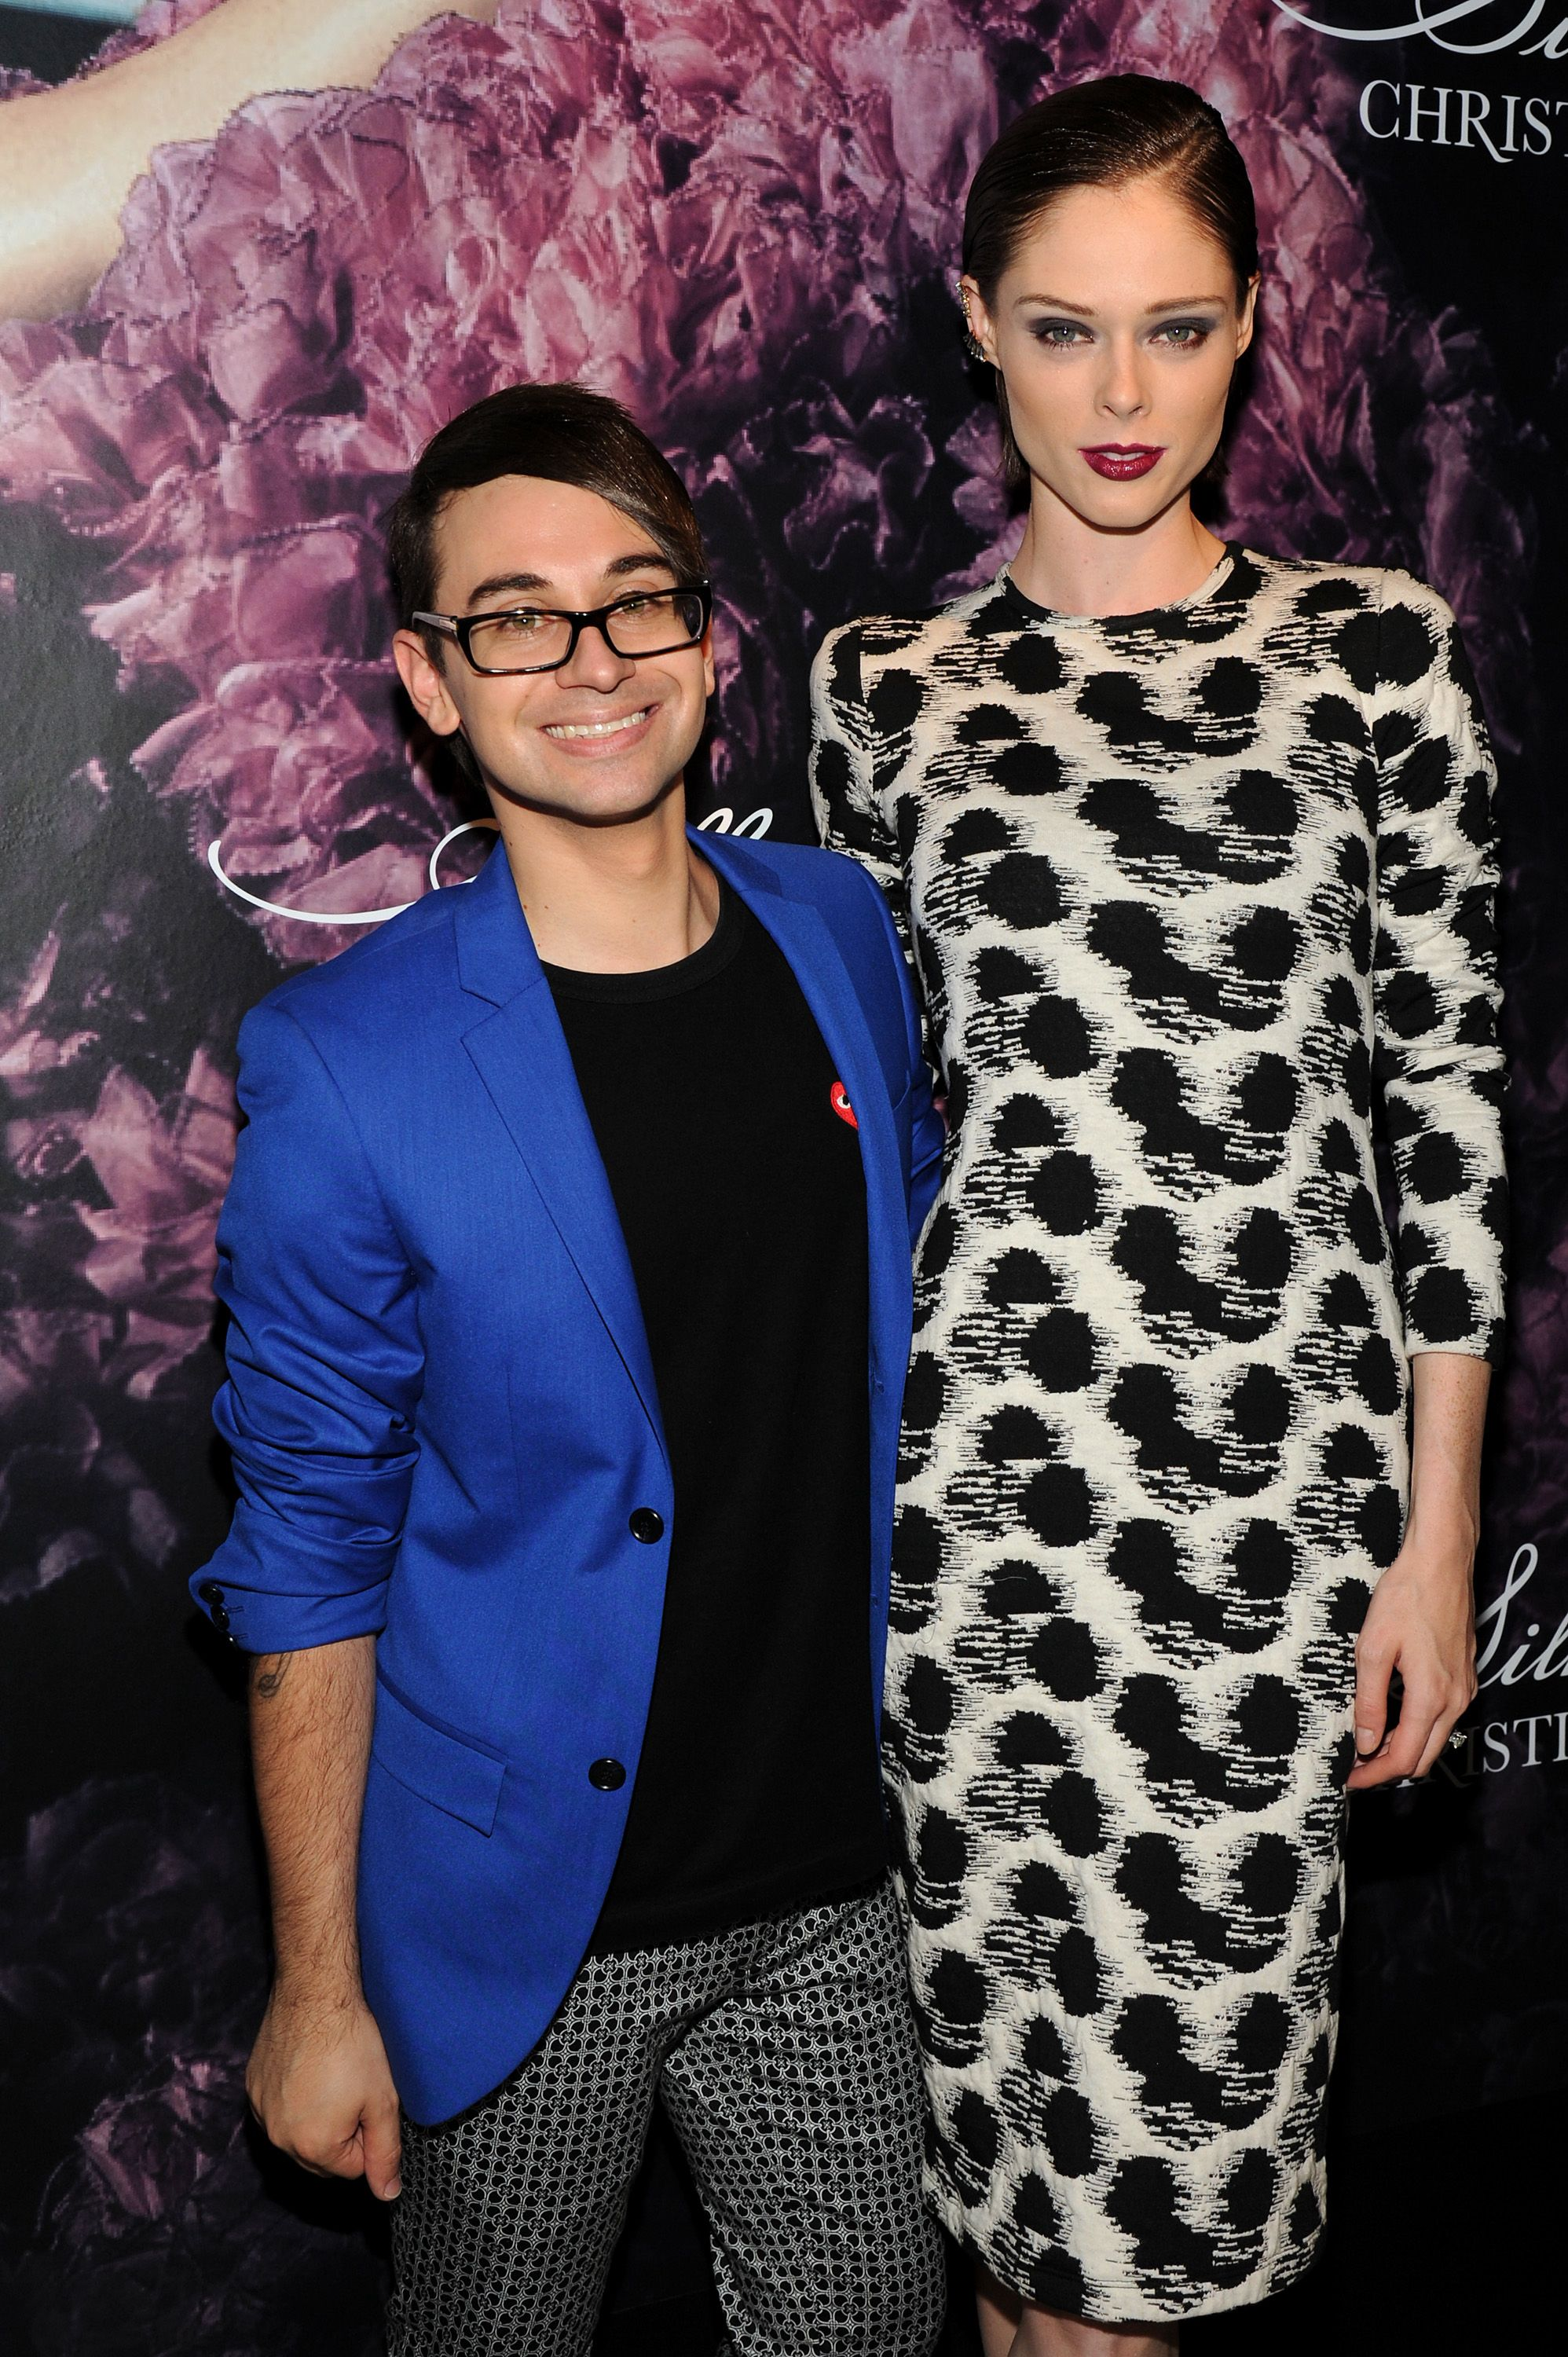 Coco Rocha attends Christian Siriano's celebration of his new fragrance